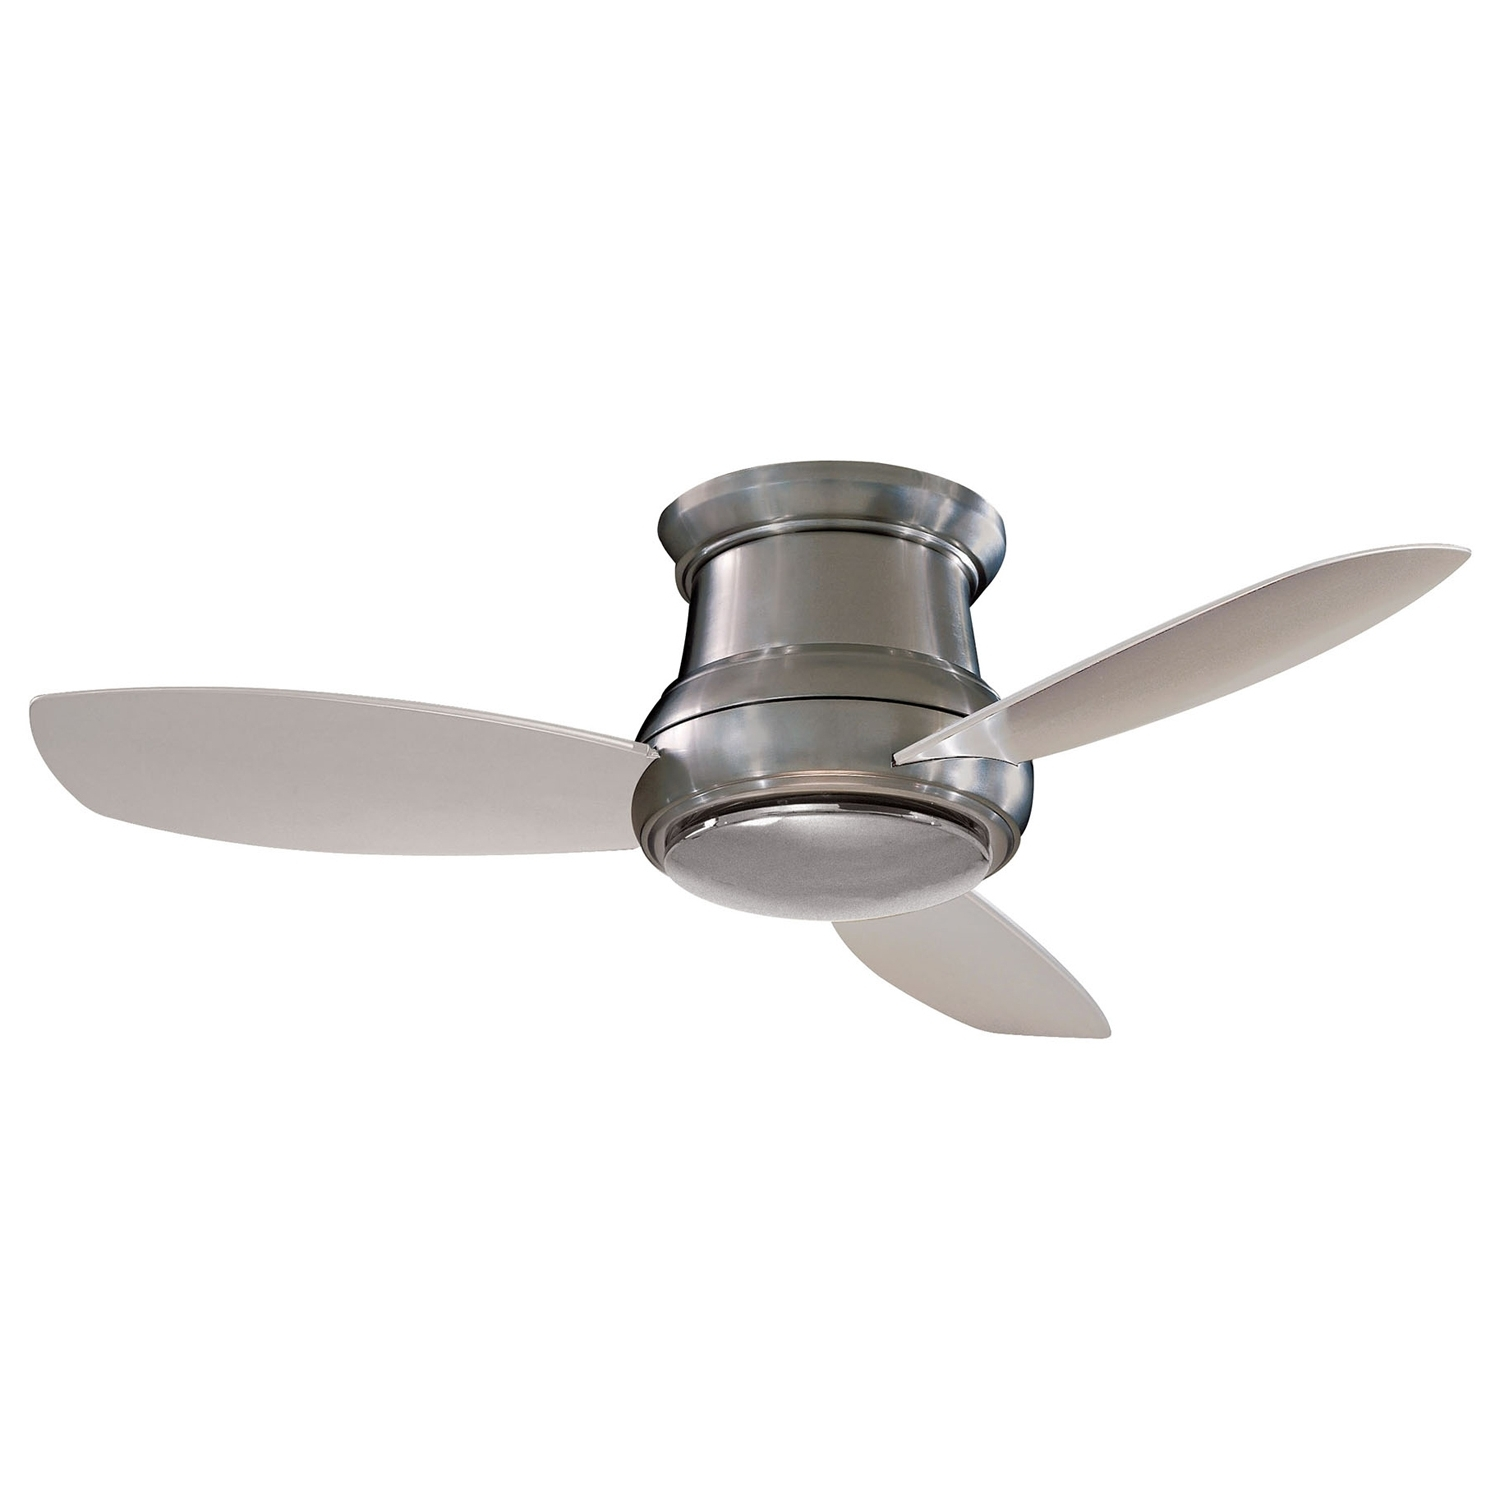 Outdoor Ceiling Fans With Led Globe Pertaining To 2019 Minka Aire Concept Ii Brushed Nickel 44 Inch Flush Led Ceiling Fan (View 14 of 20)